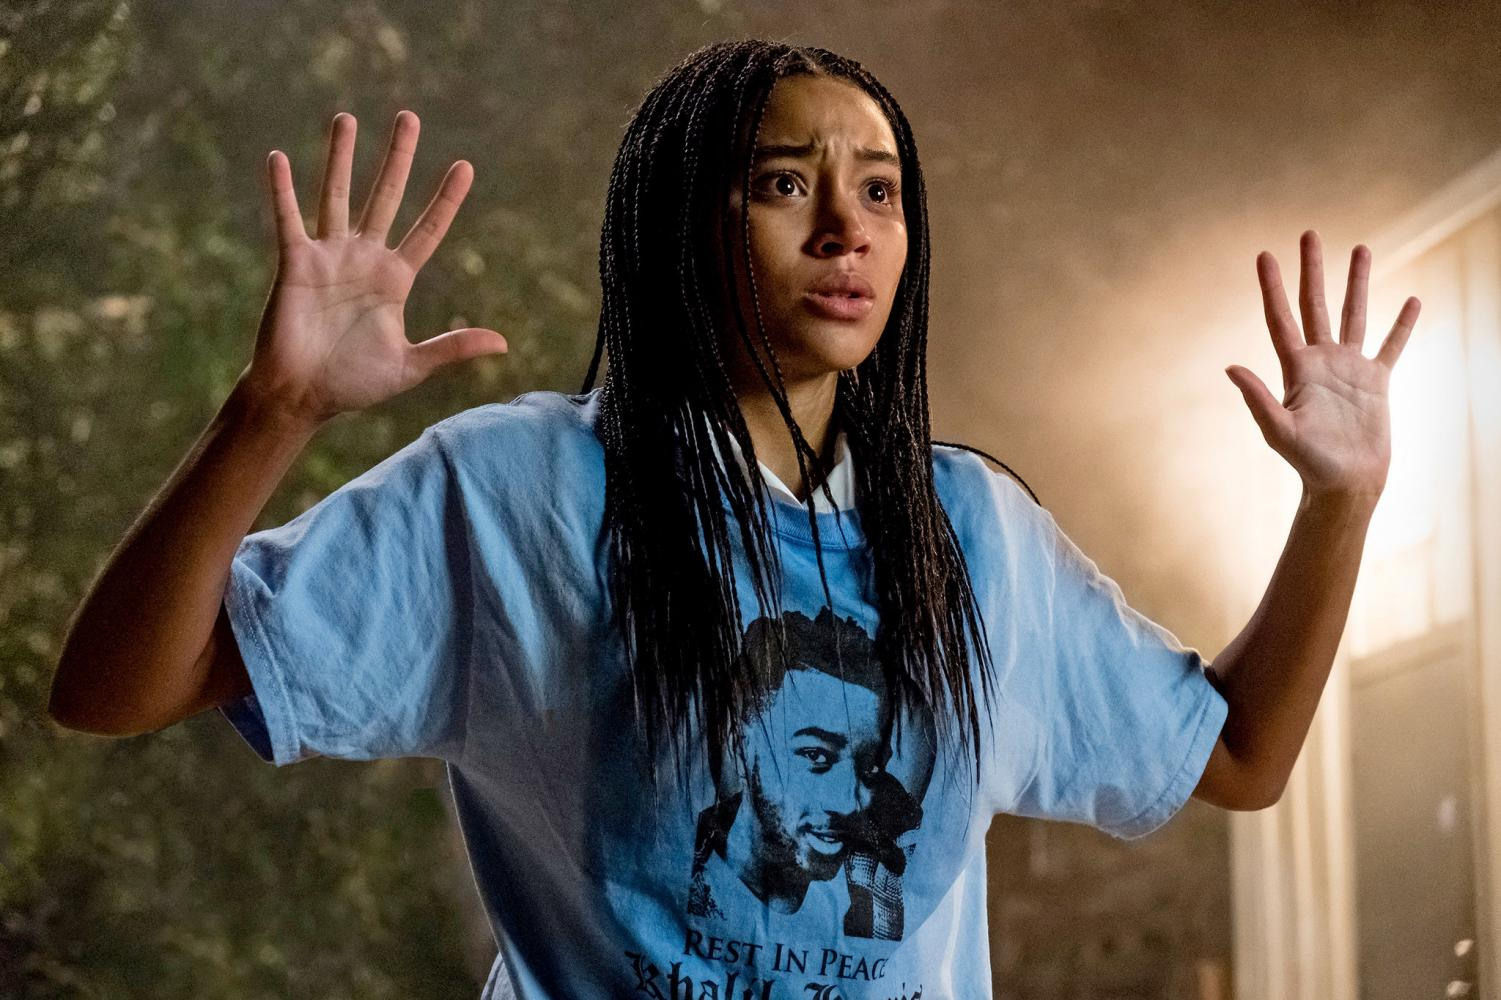 UNIQUE Programs is hosting a movie screening and post-screening discussion for the movie 'The Hate U Give,' based off the novel written by Angie Thomas. The screening will take place on Thursday, May 2 in the University Union Ballroom.